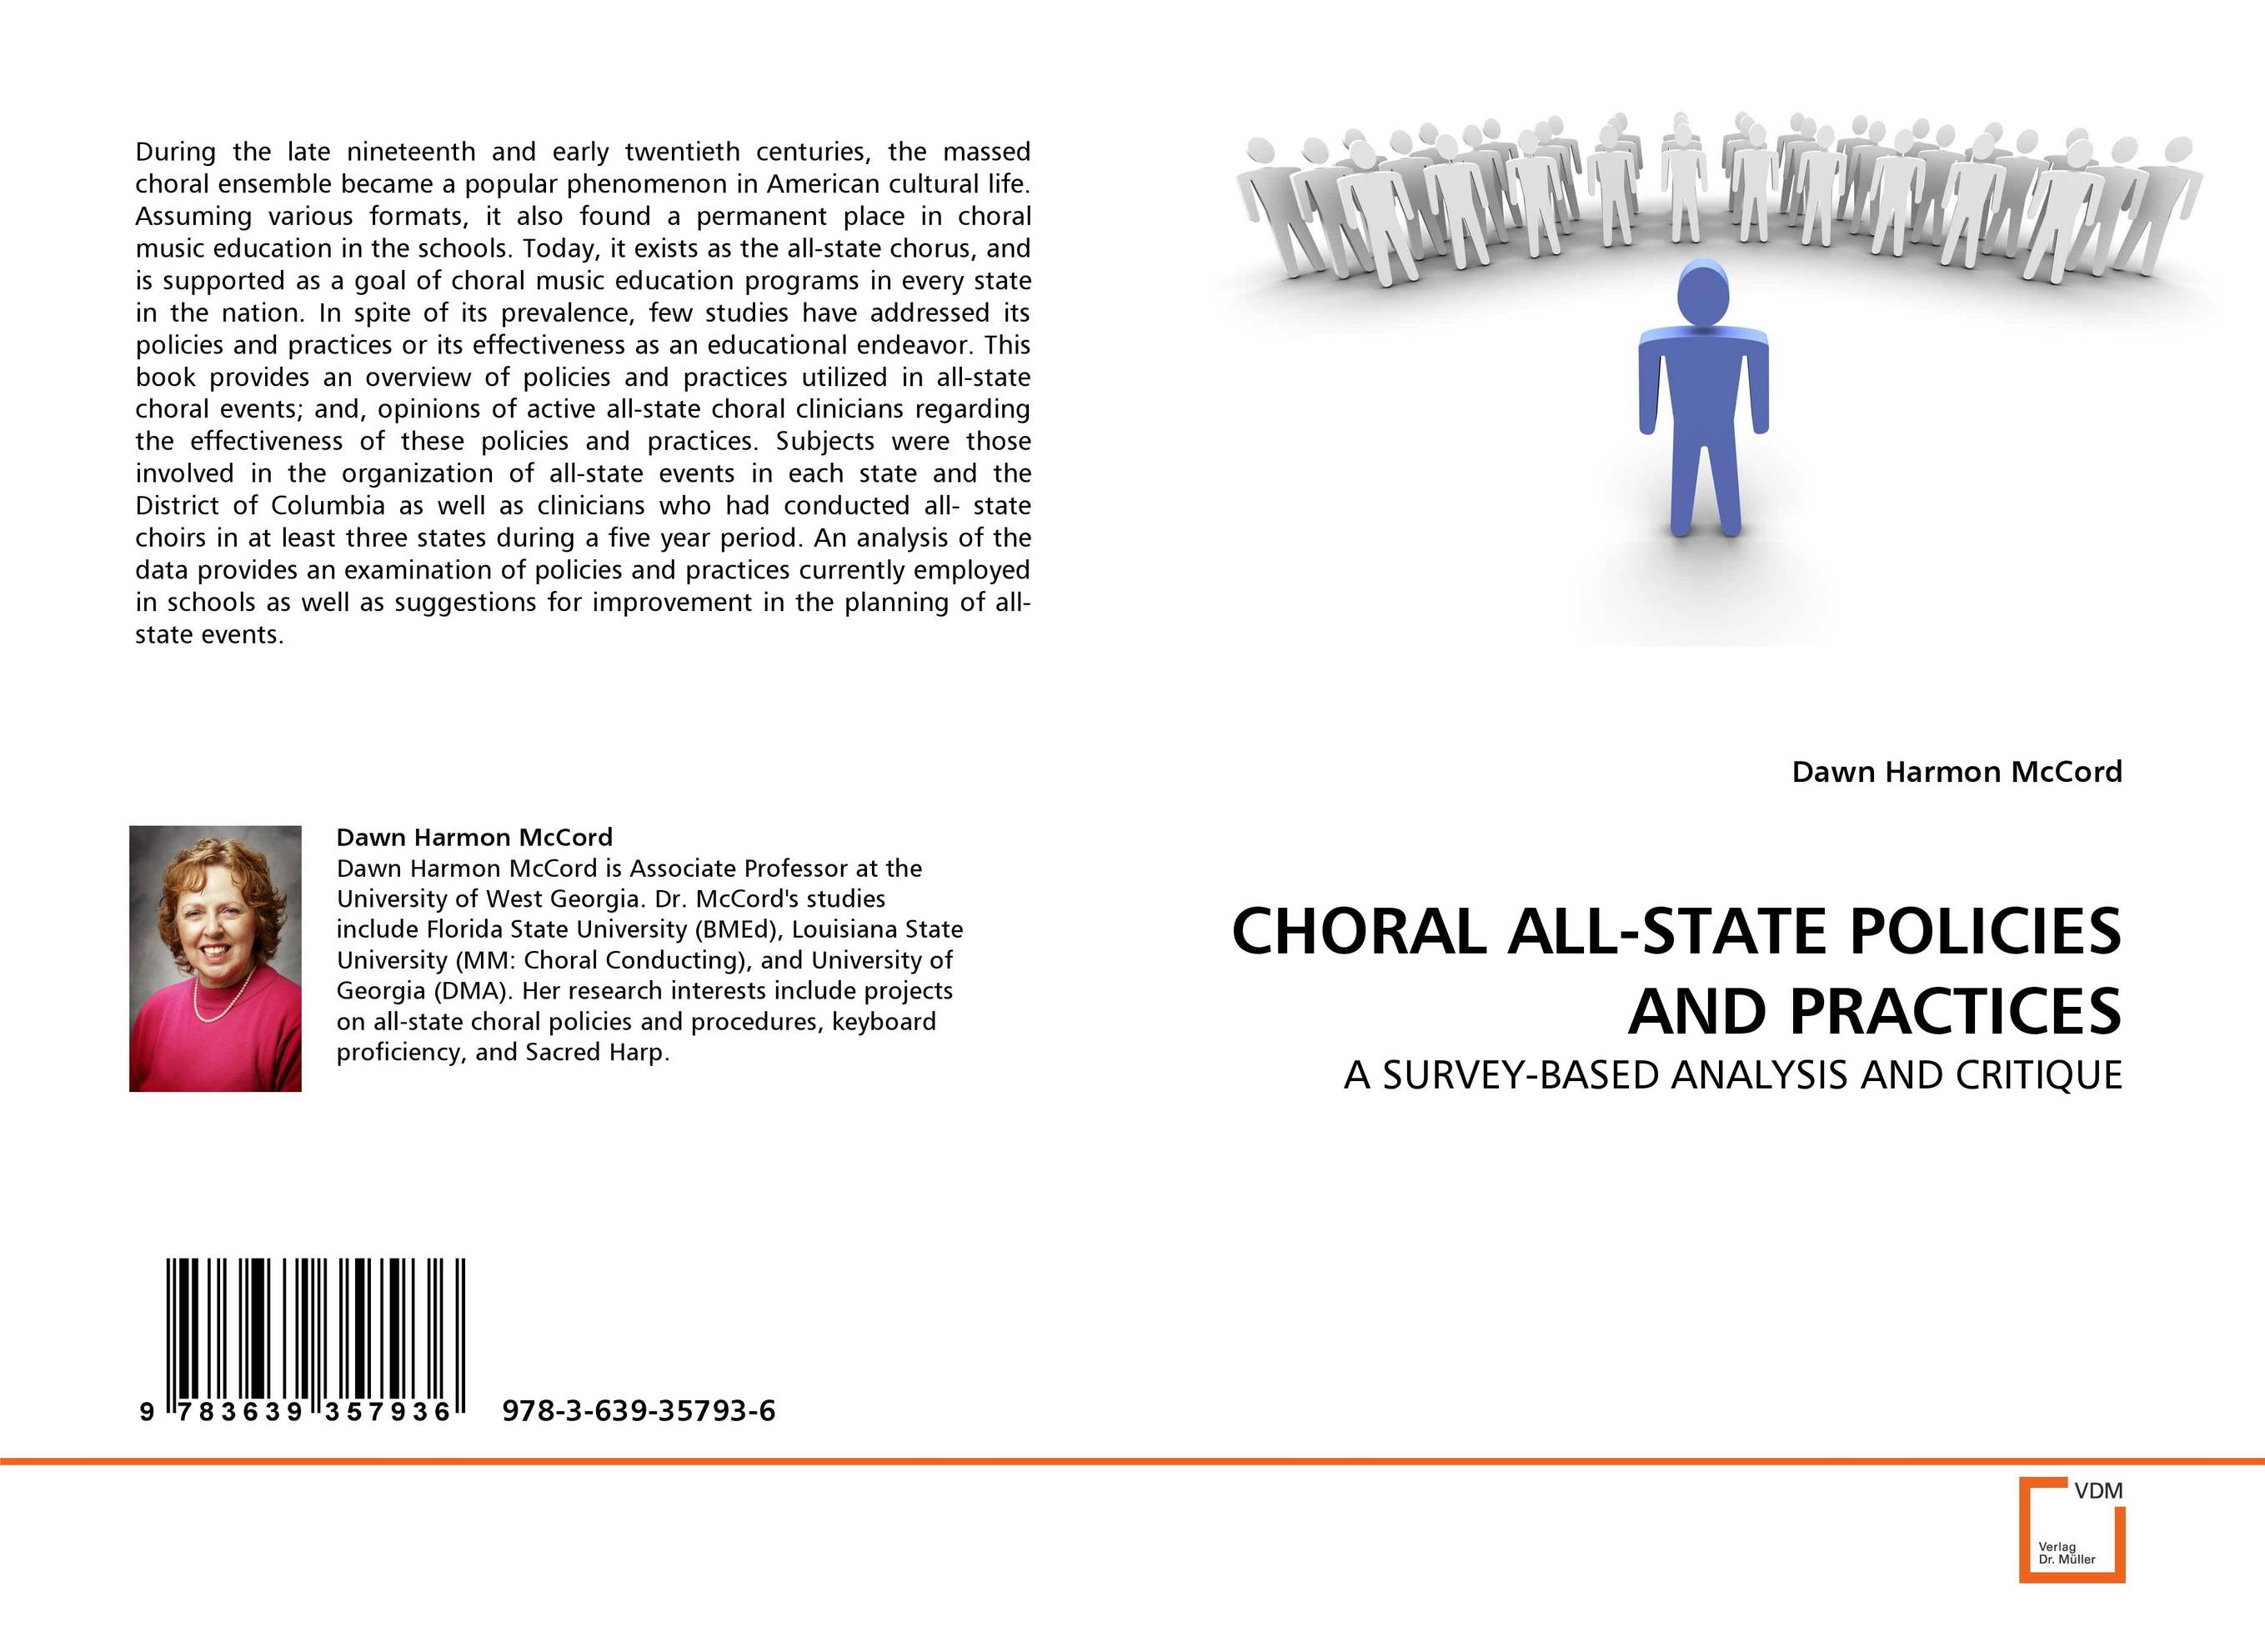 CHORAL ALL-STATE POLICIES AND PRACTICES shara shara lovely choral